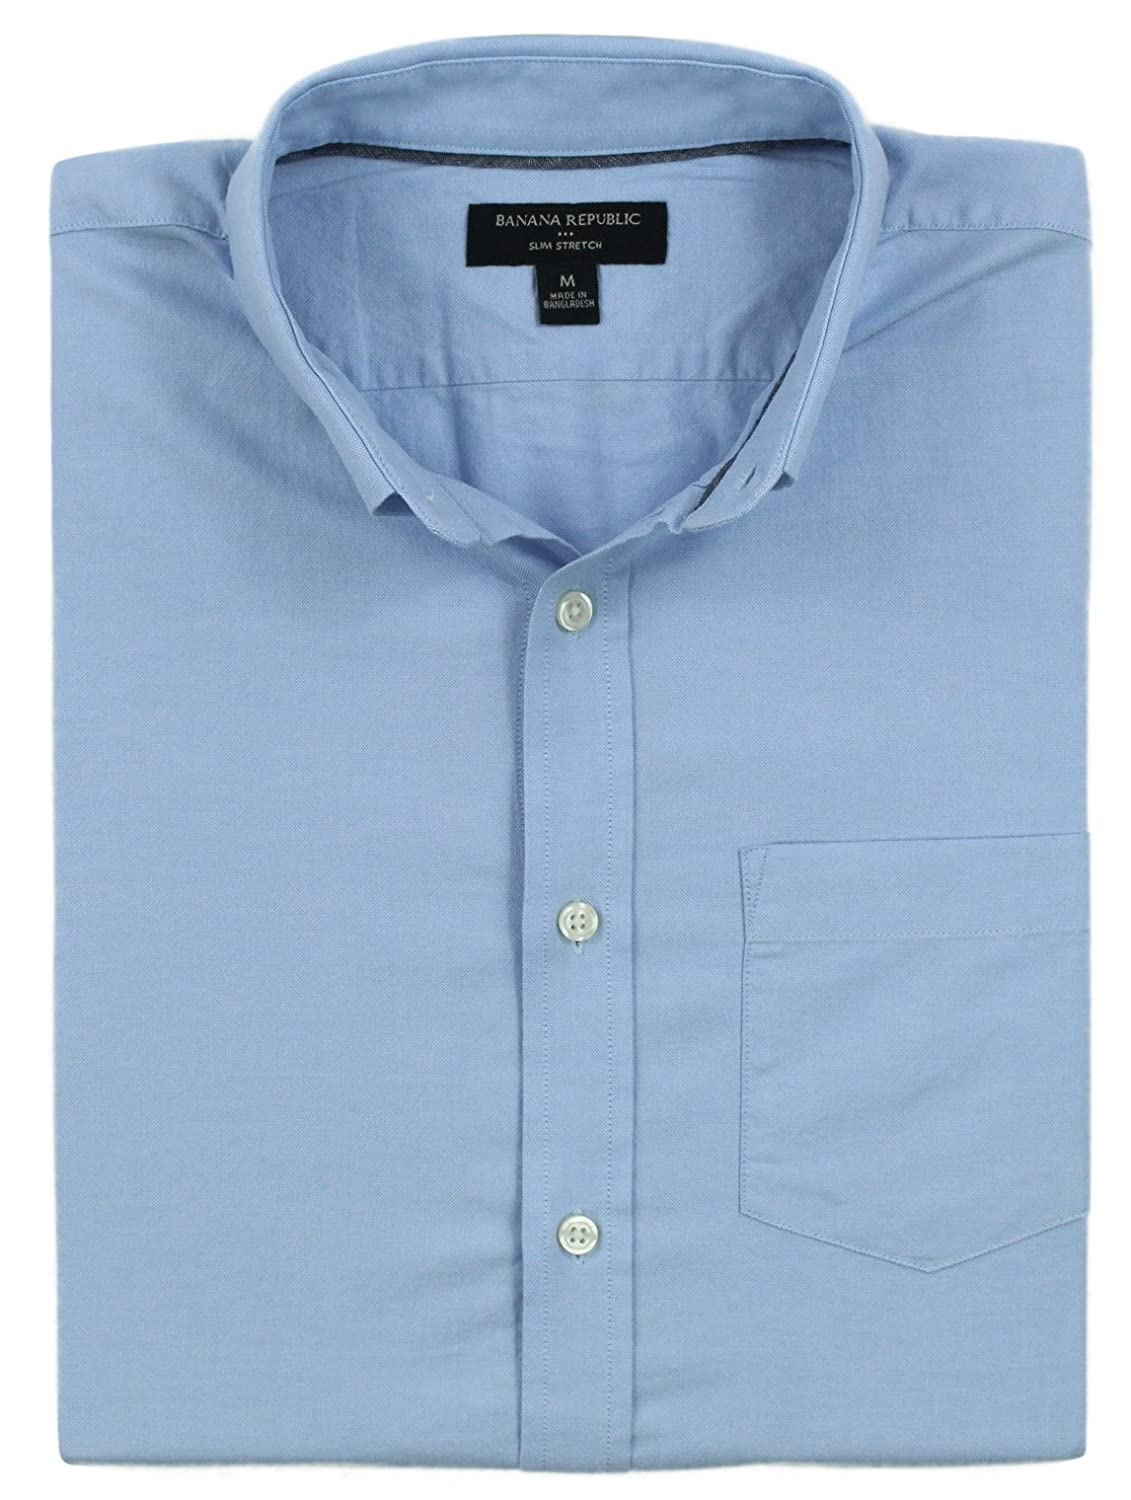 b5894ebd Cotton, machine washable. Slim fit, cut more narrowly through the chest and  sleeves. Button down collar. Single chest pocket. Long sleeves, easily  cuffed.